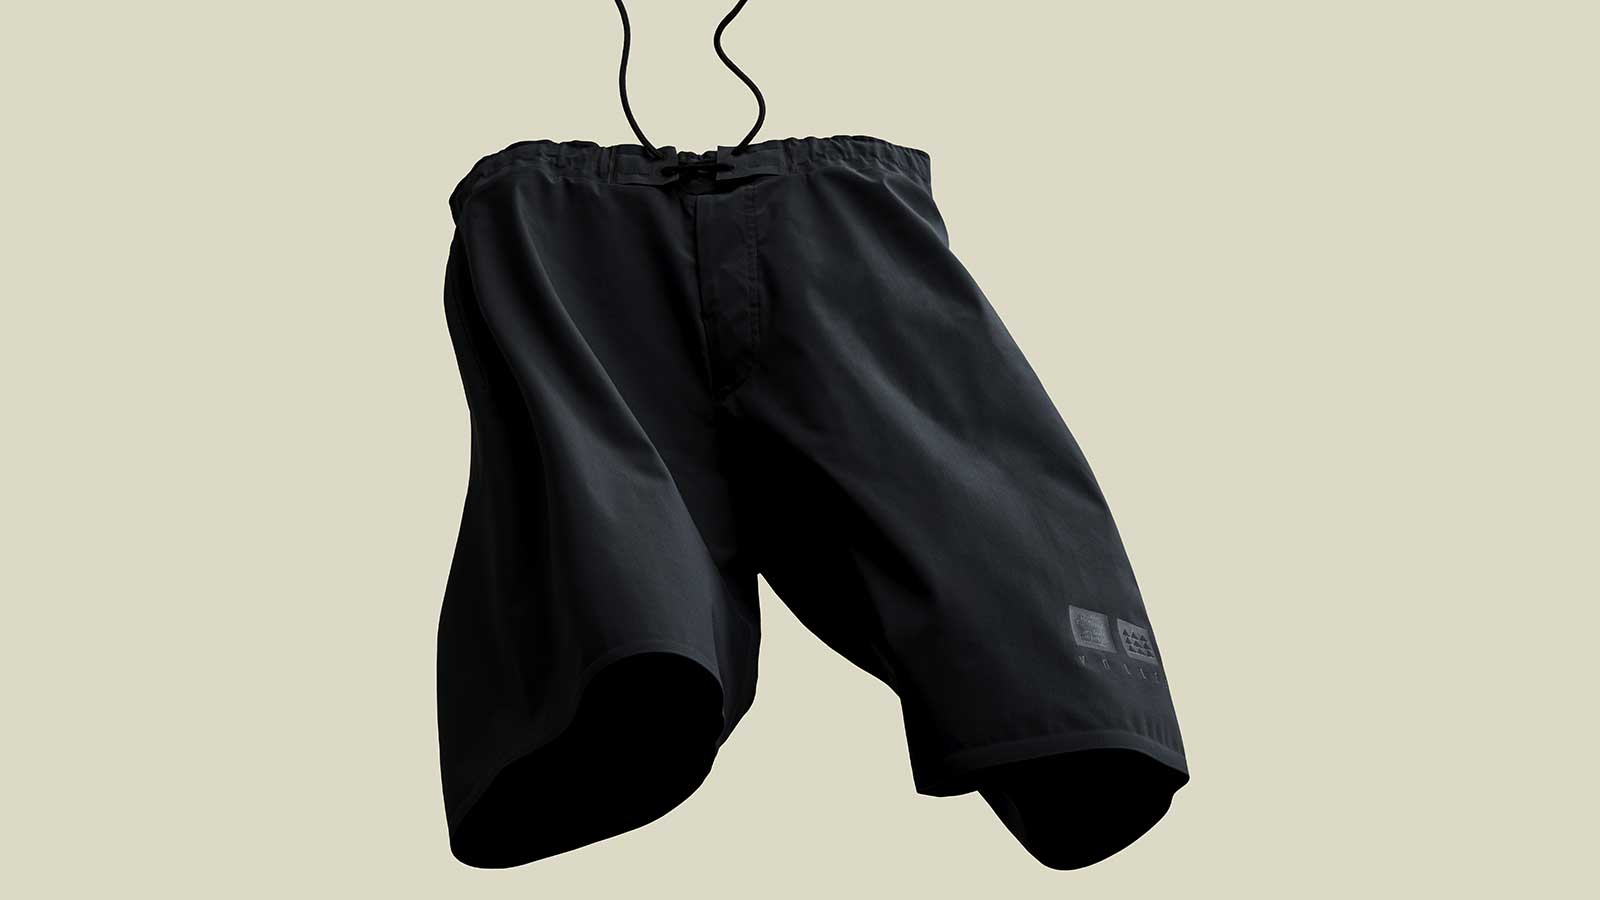 The Vollebak Ocean Shorts